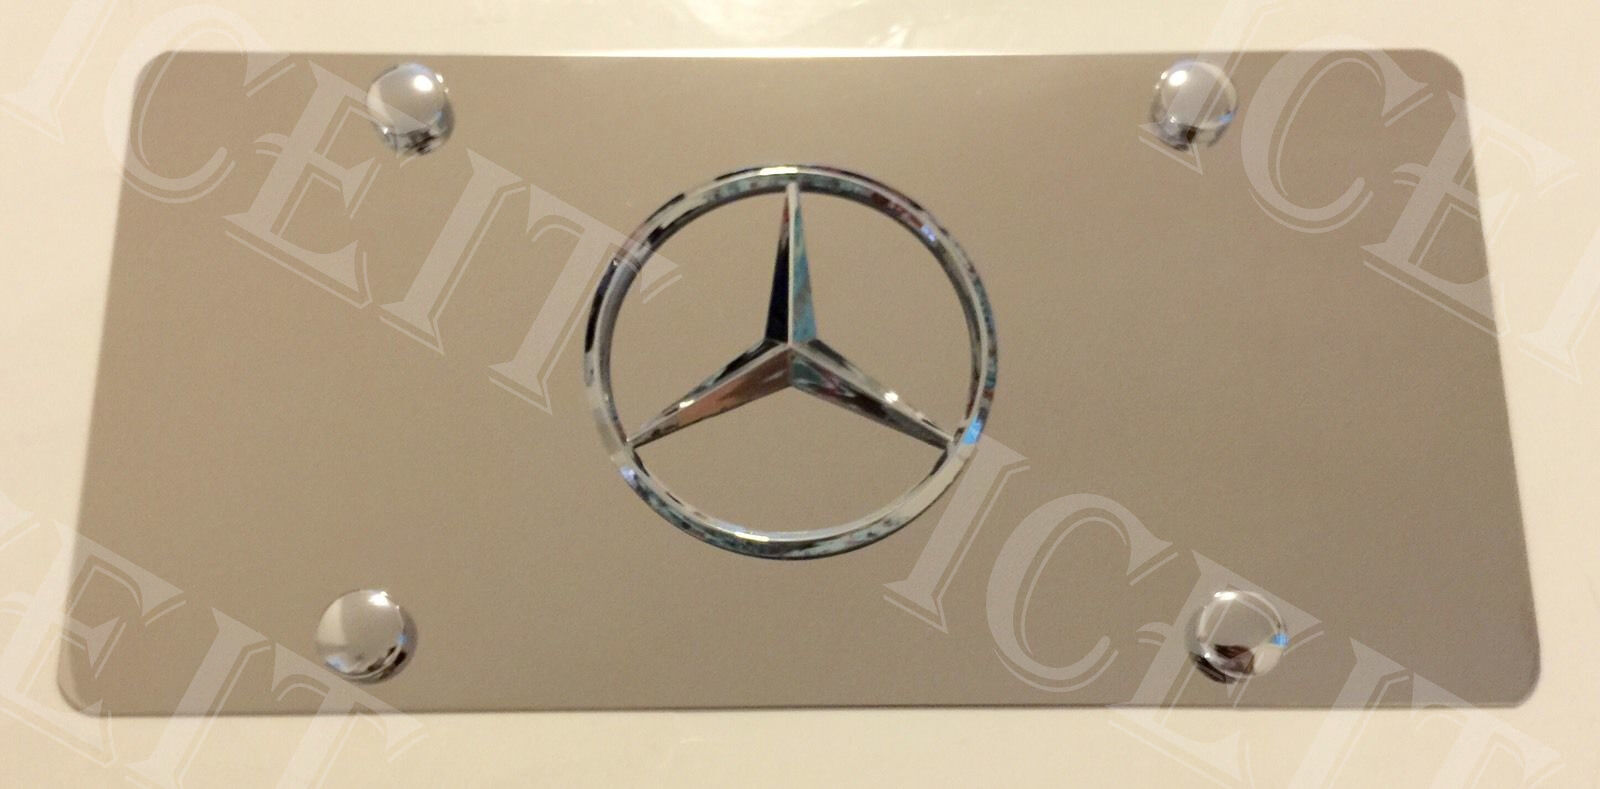 Mercedes Benz Front Mirror Vanity License Plate Stainless Steel Heavy Duty